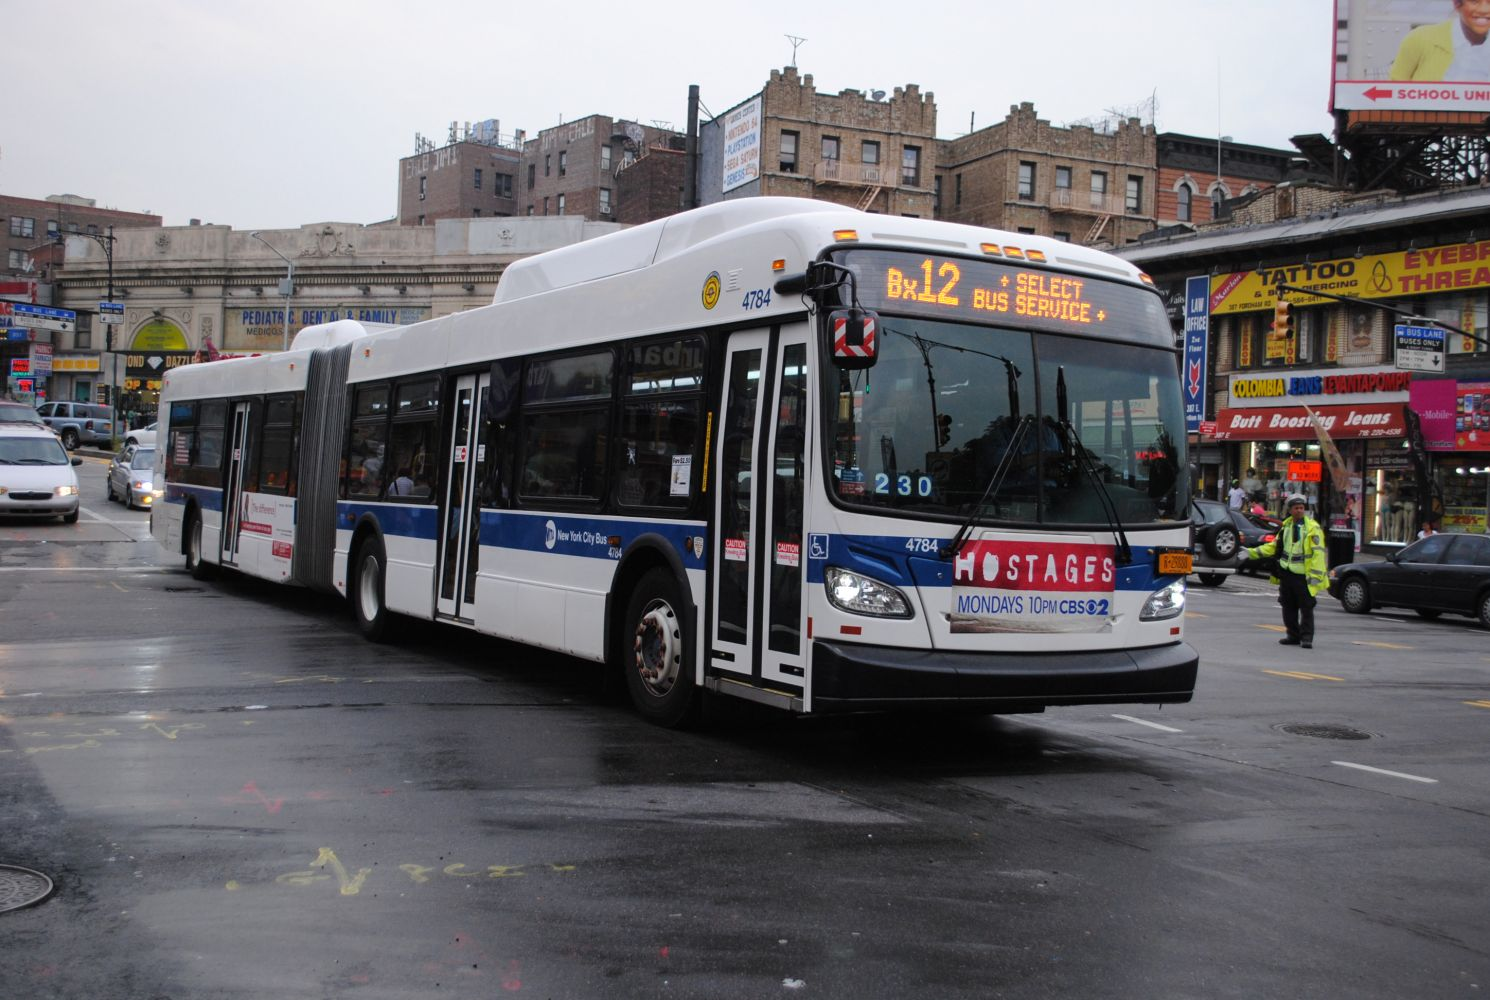 New Flyer XD60 4784 on the Bx12 Select Bus Service